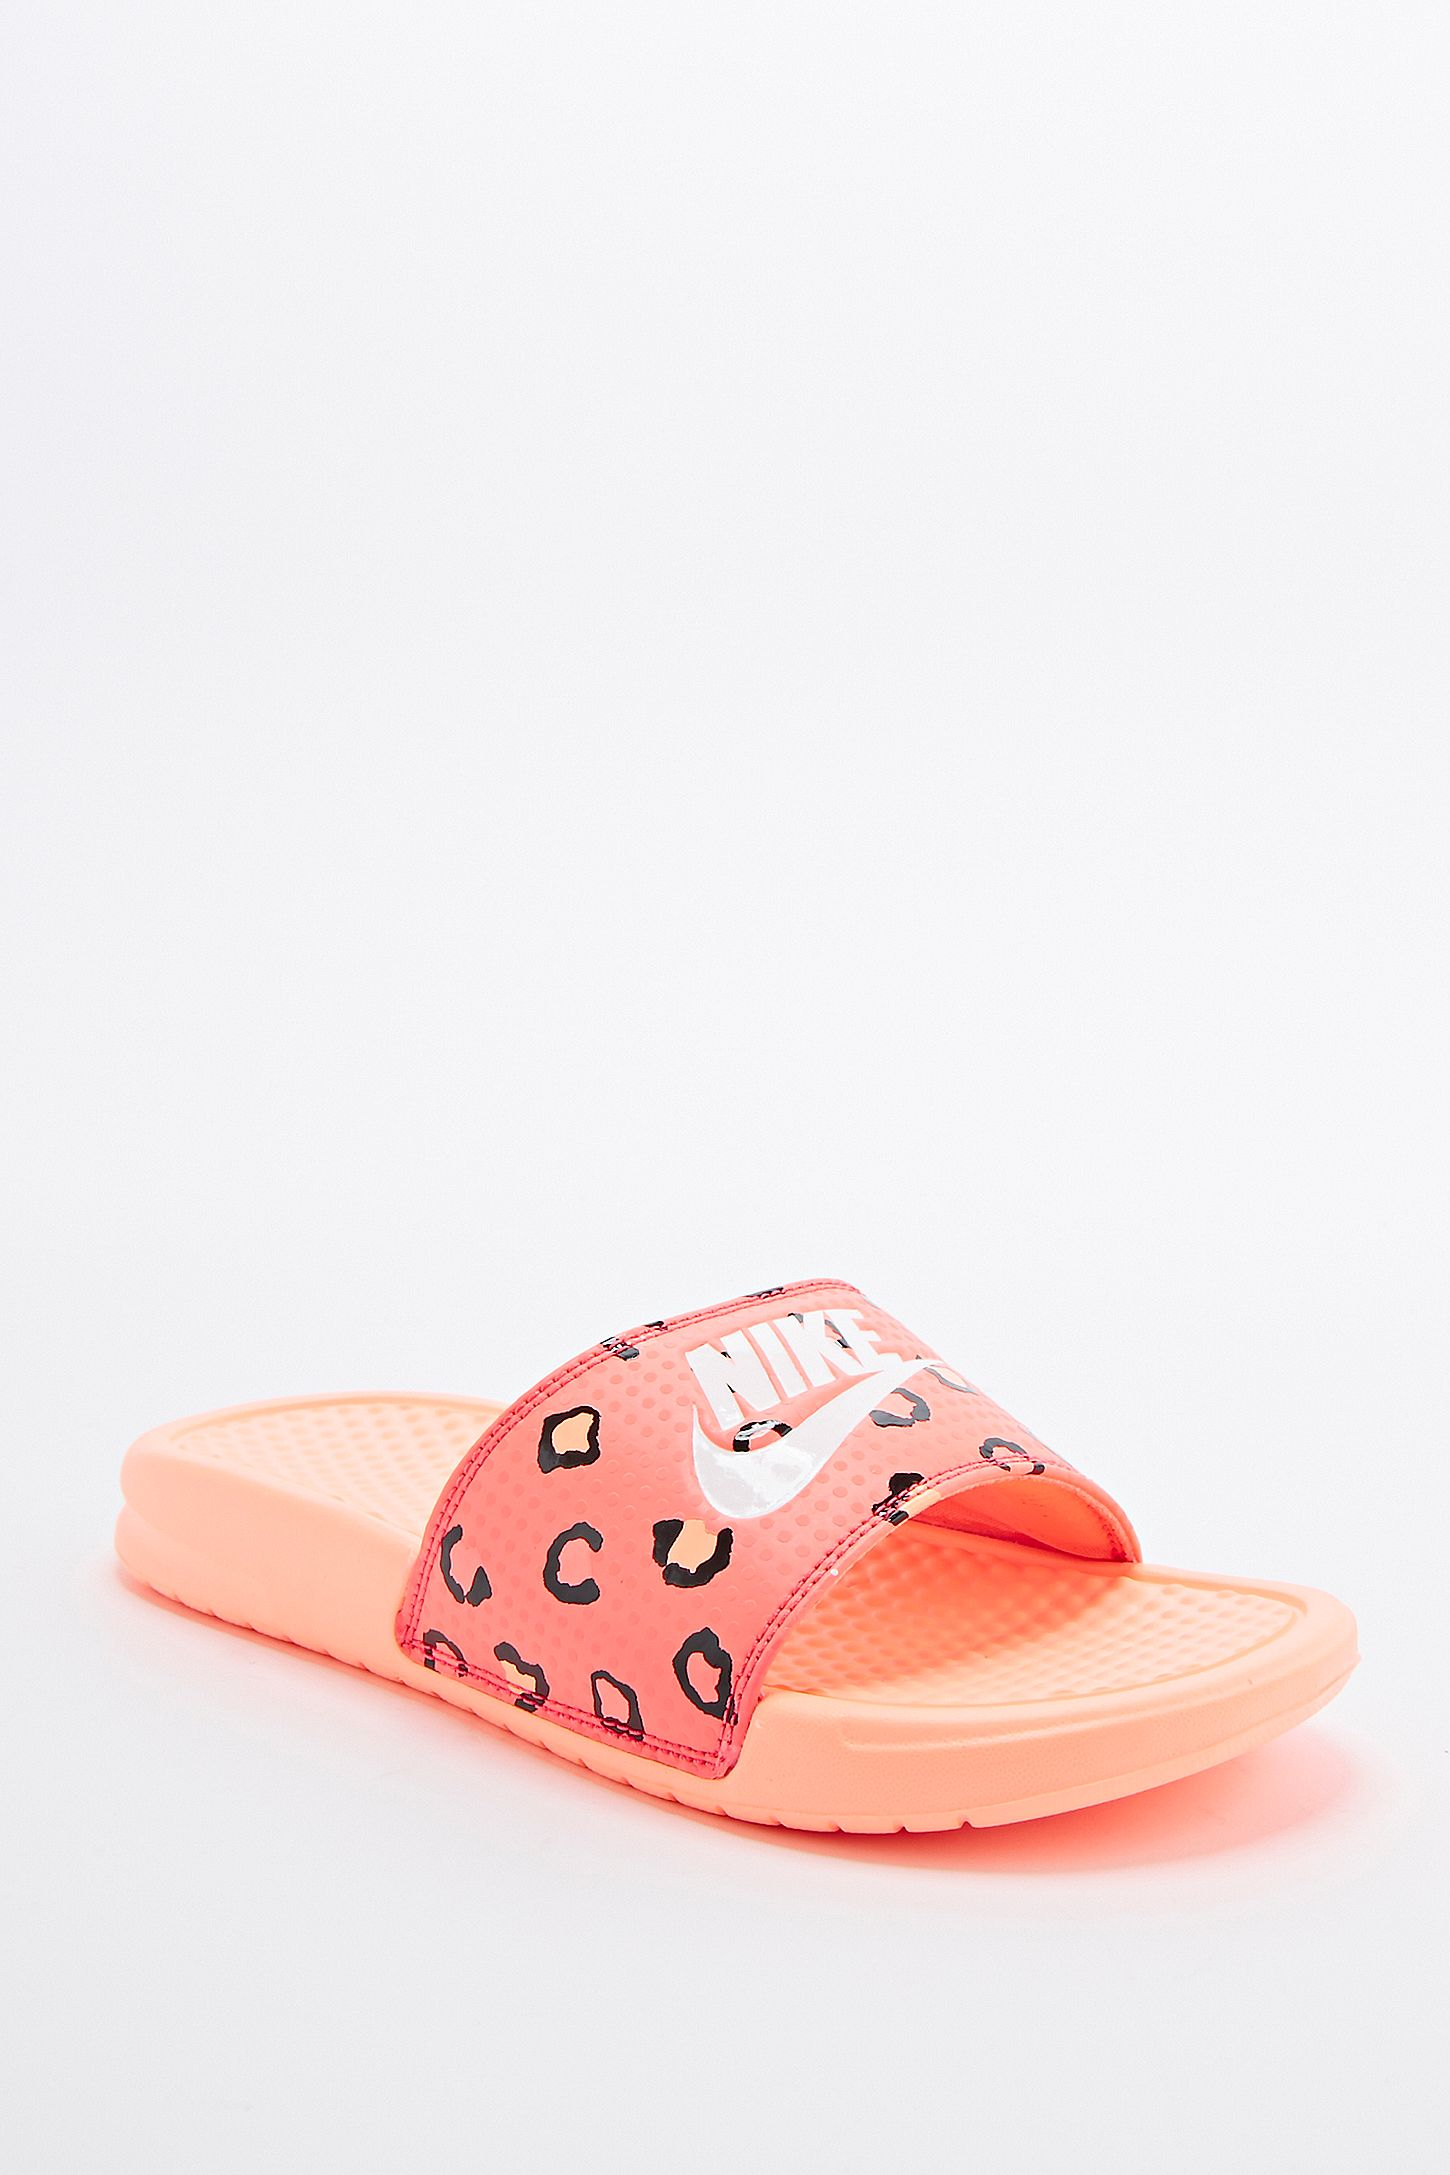 fc94d1cc7a23 Nike Benassi JD Printed Sliders in Orange